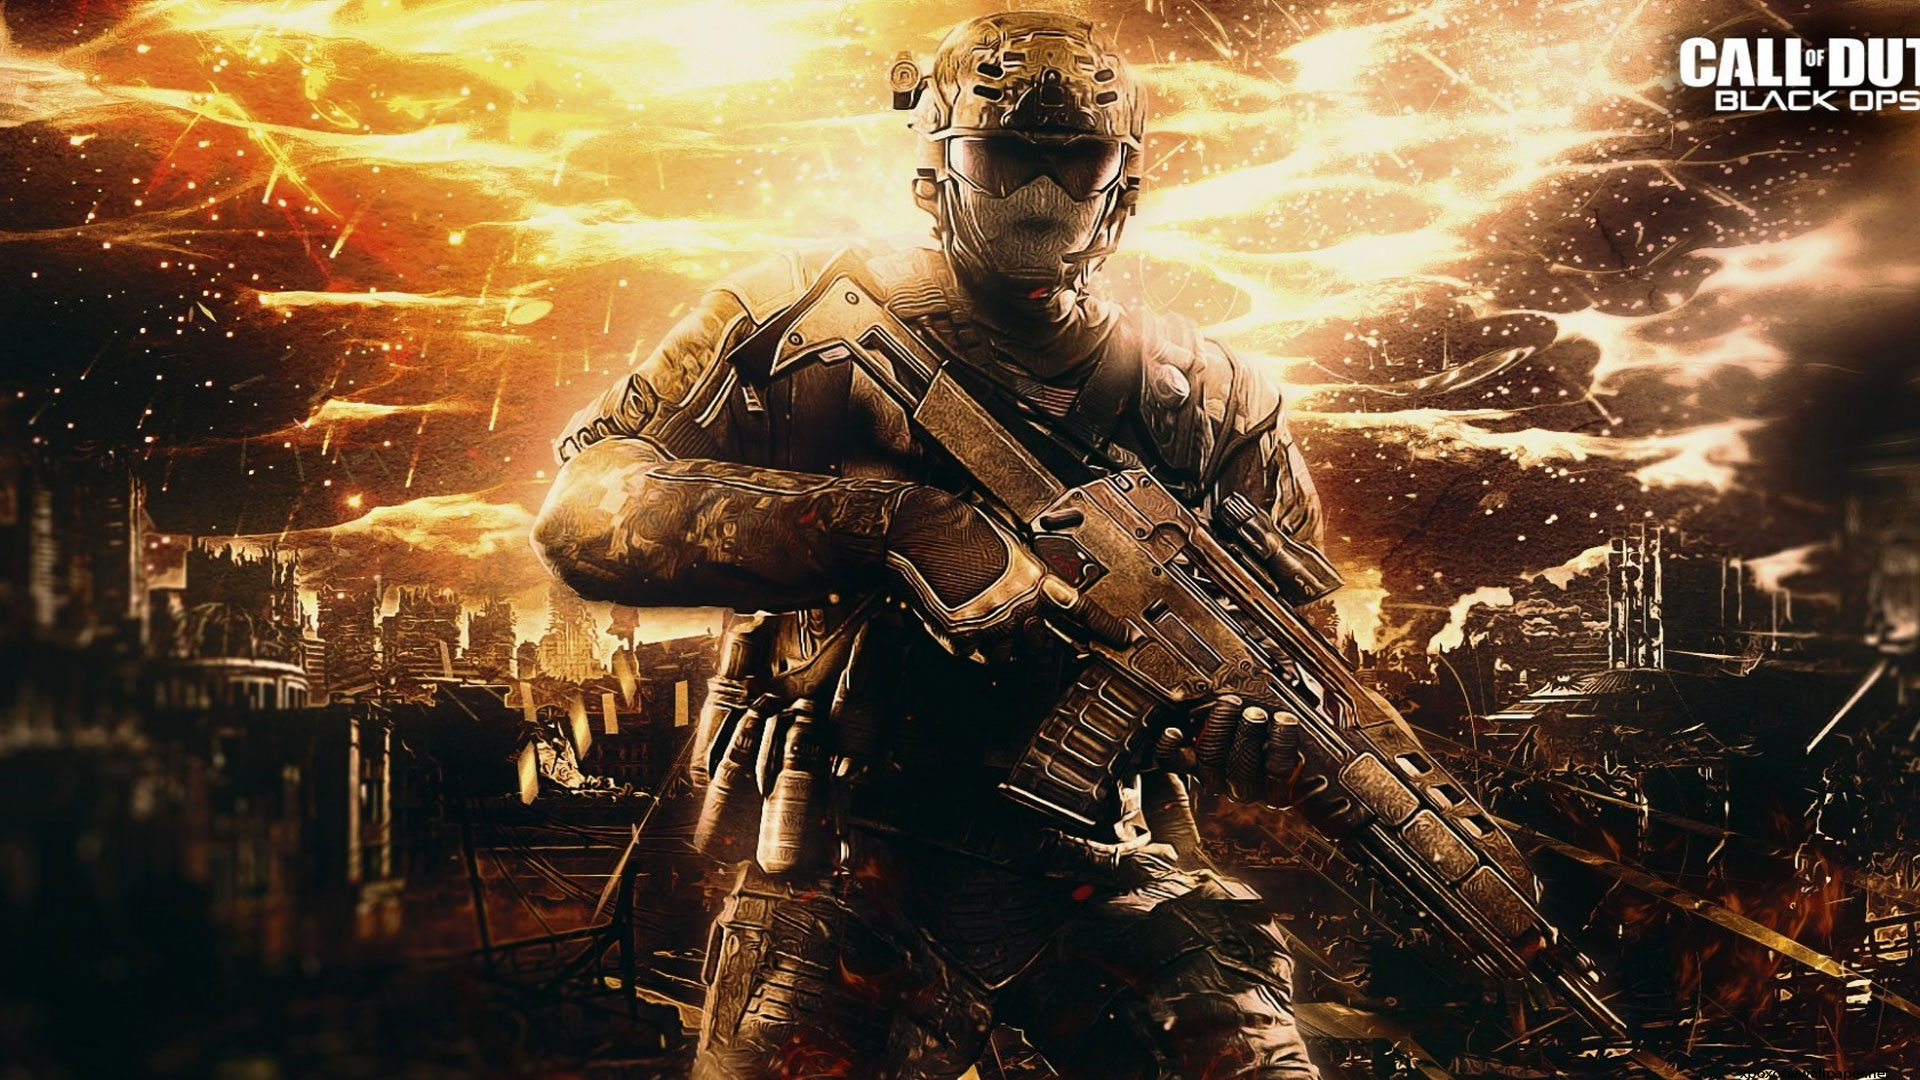 Free Download Call Of Duty Black Ops 2 Wallpaper Photo Hd